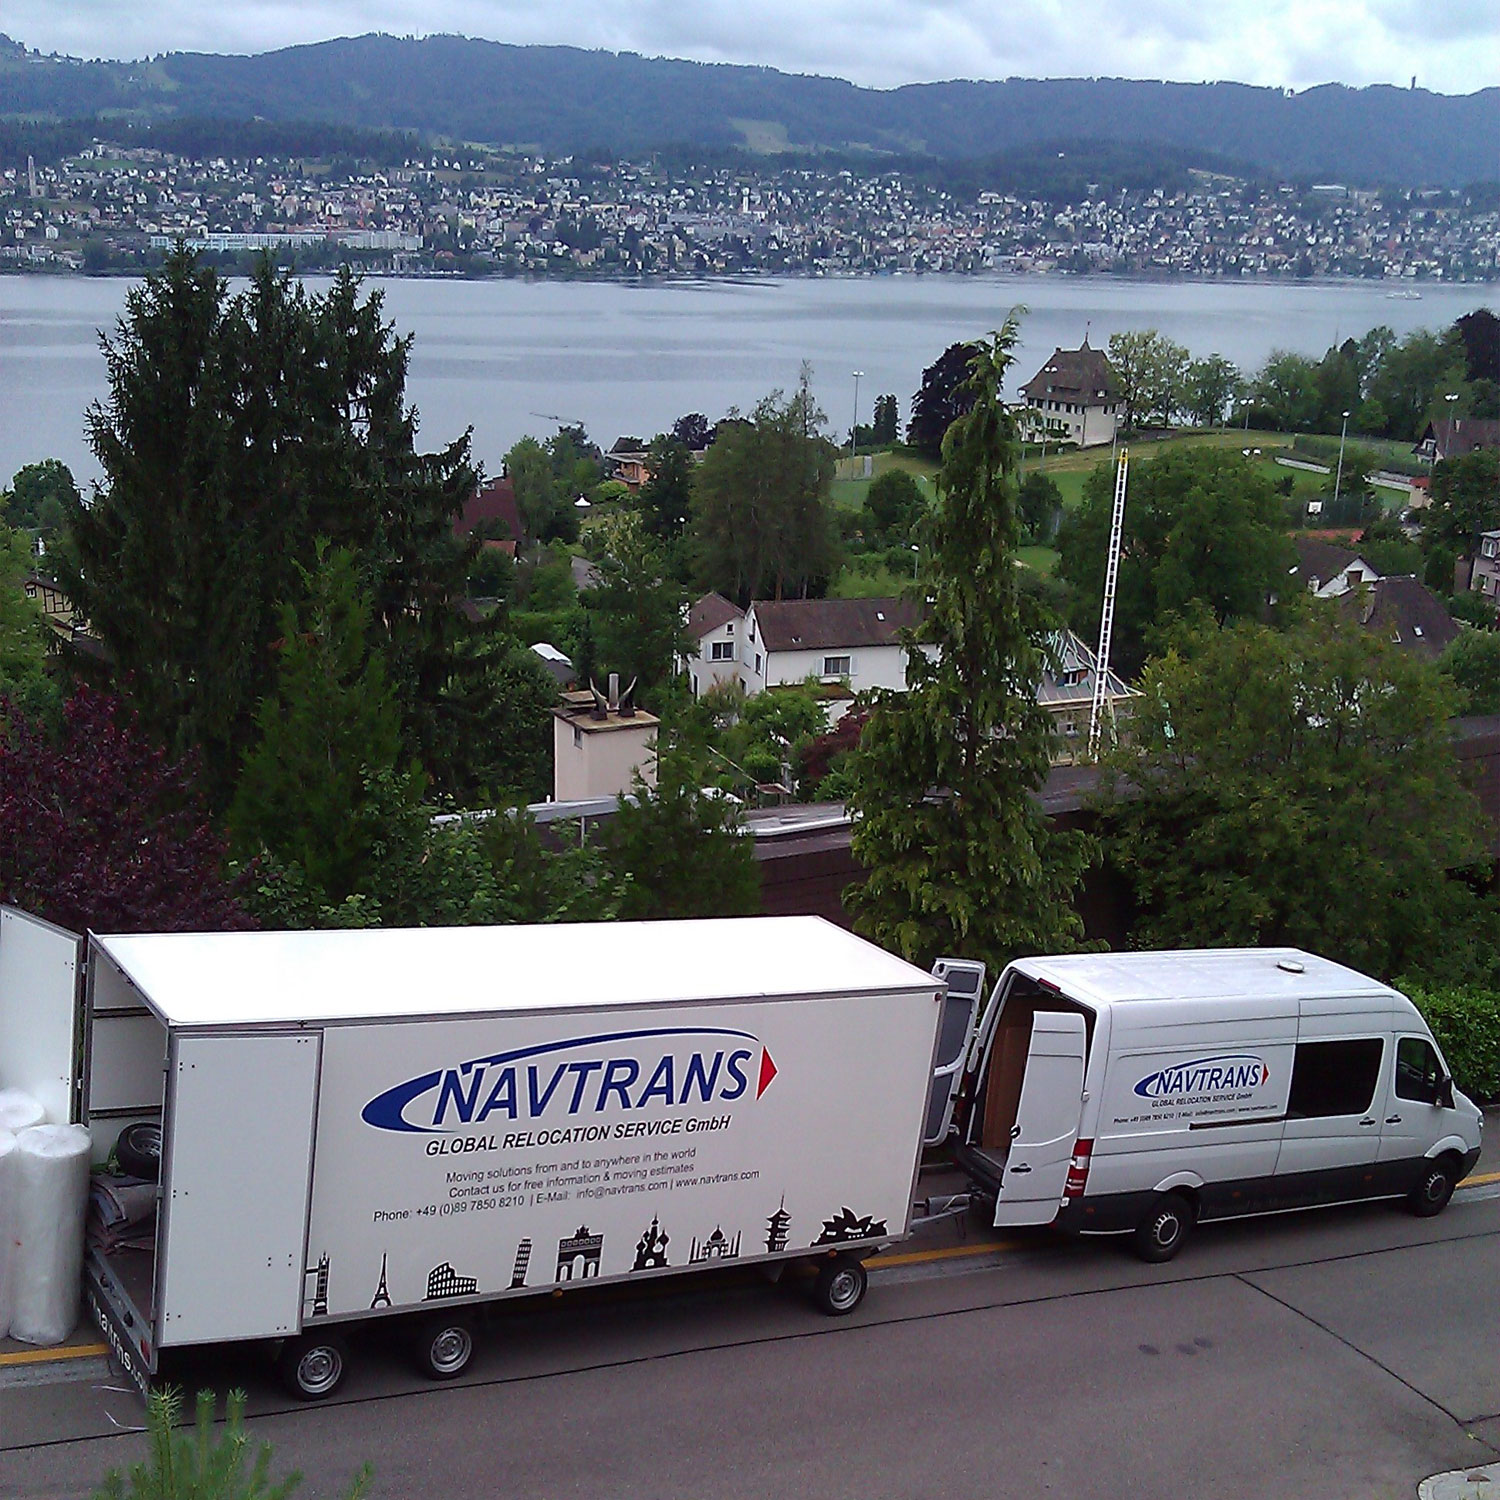 navtrans-about-us - NAVTRANS Global Relocation Service GmbH